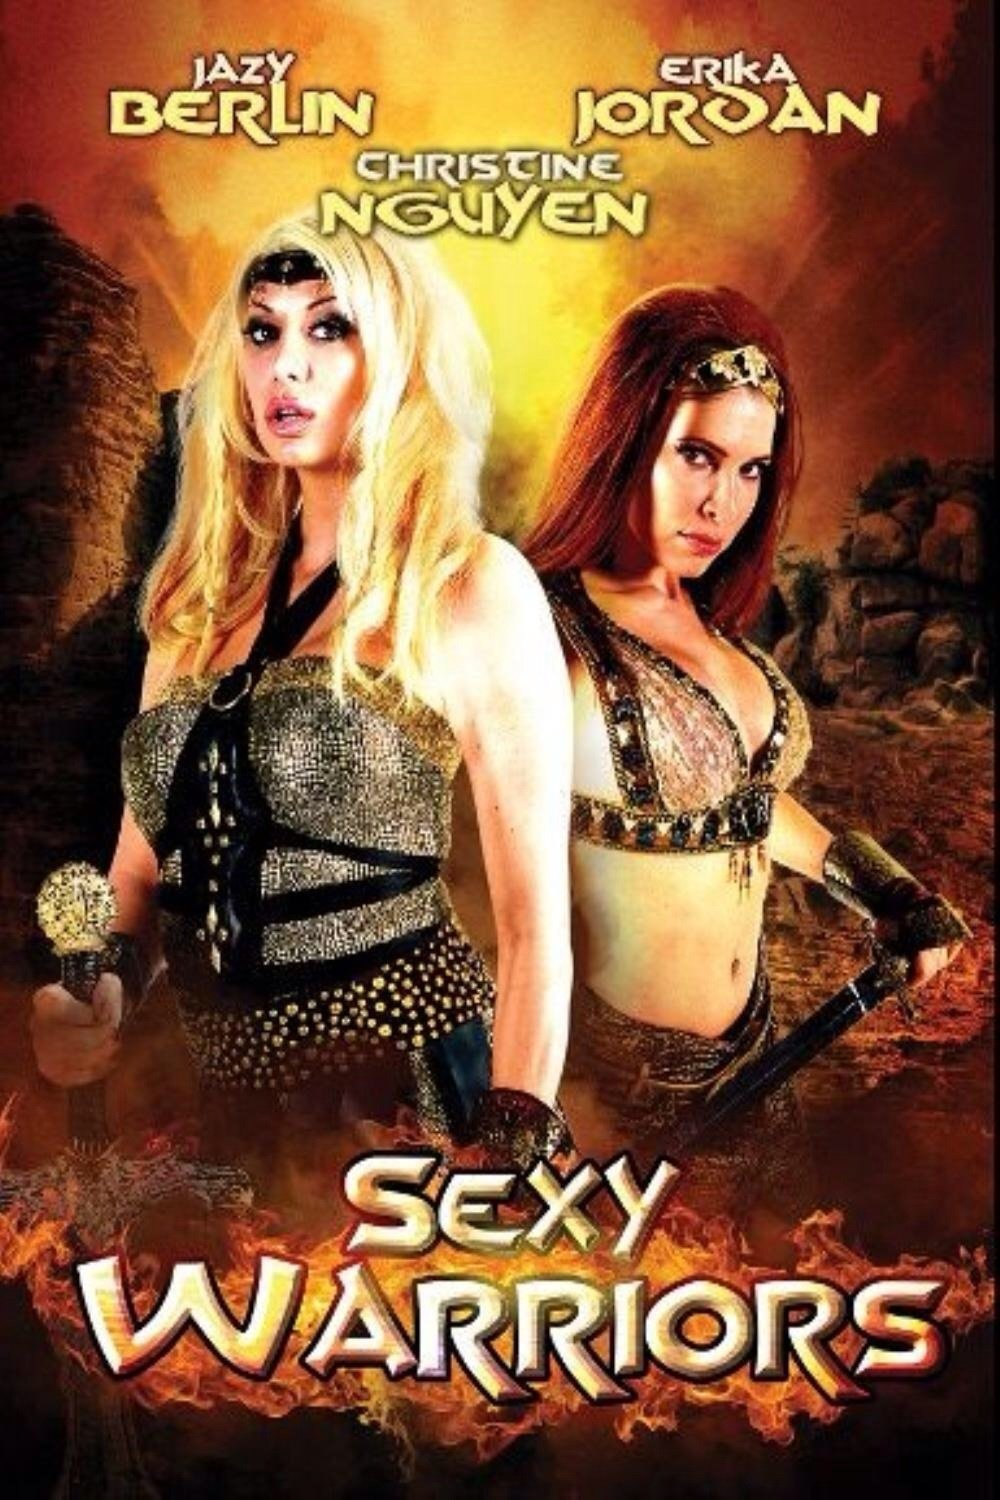 Sexy warriors movie